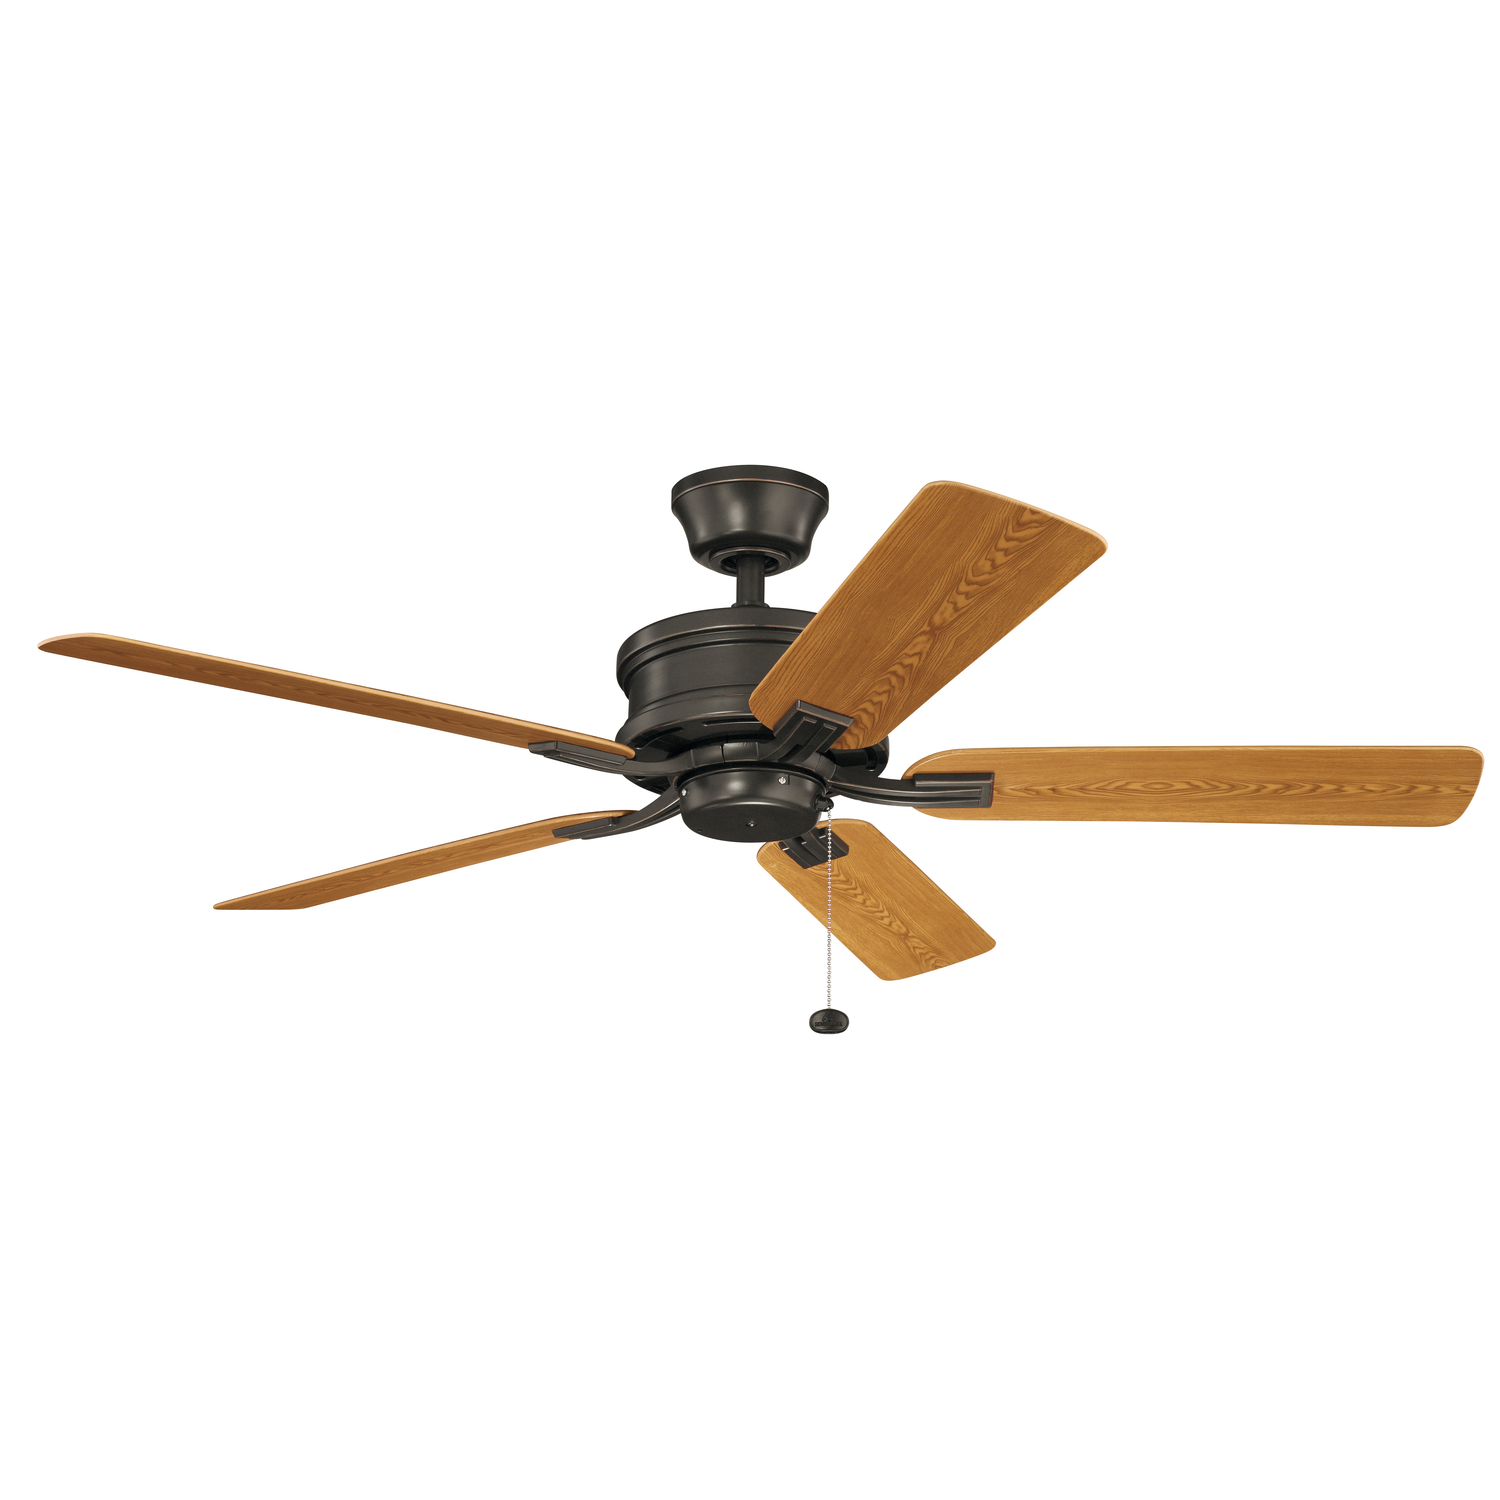 52 inchCeiling Fan from the Tess collection by Kichler 310220OZ